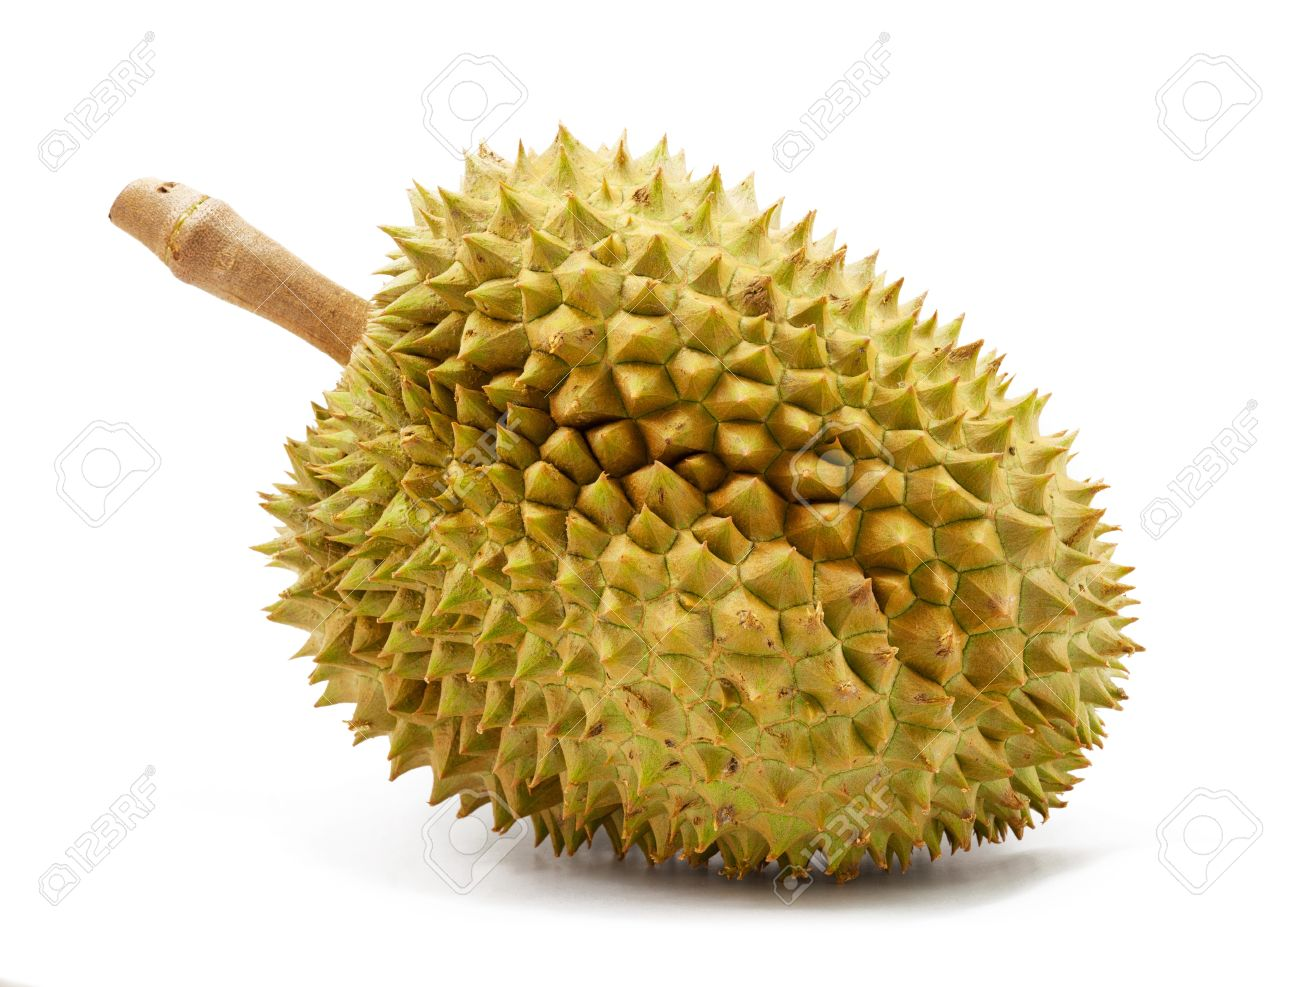 Durian Isolated On White Background Stock Photo, Picture And ...